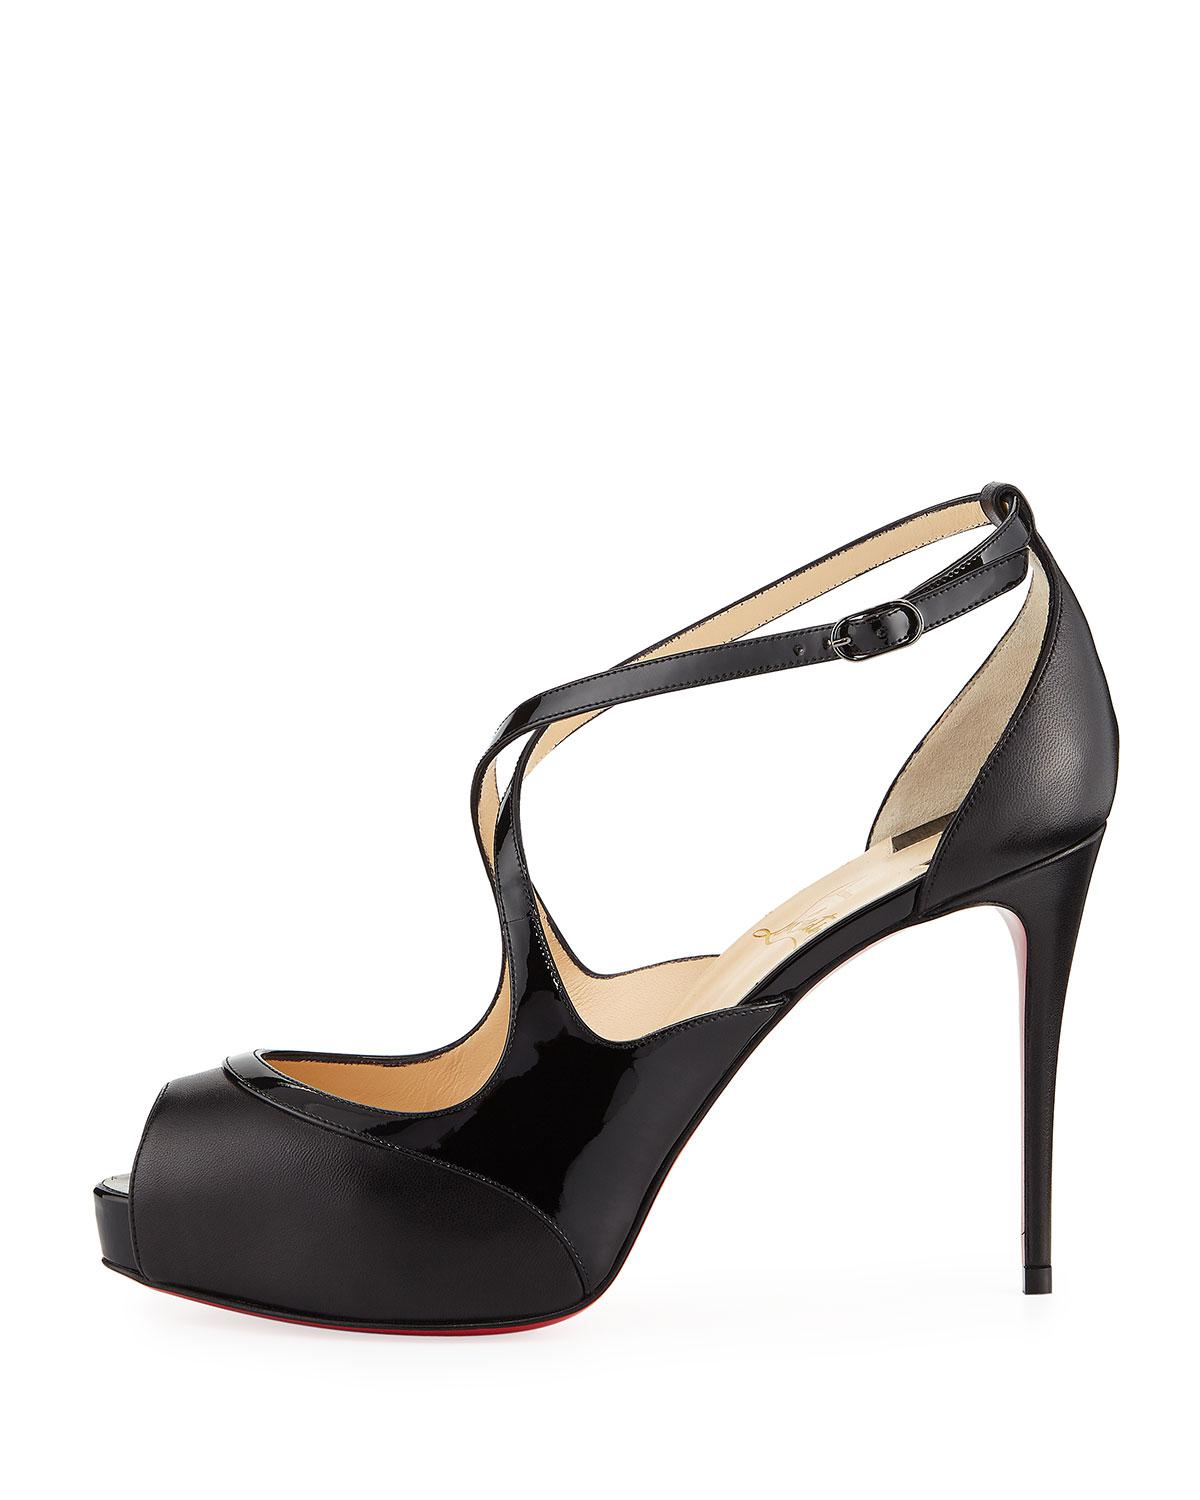 fe1ac568901 Lyst - Christian Louboutin Mirabella Strappy 100mm Red Sole Pumps in ...